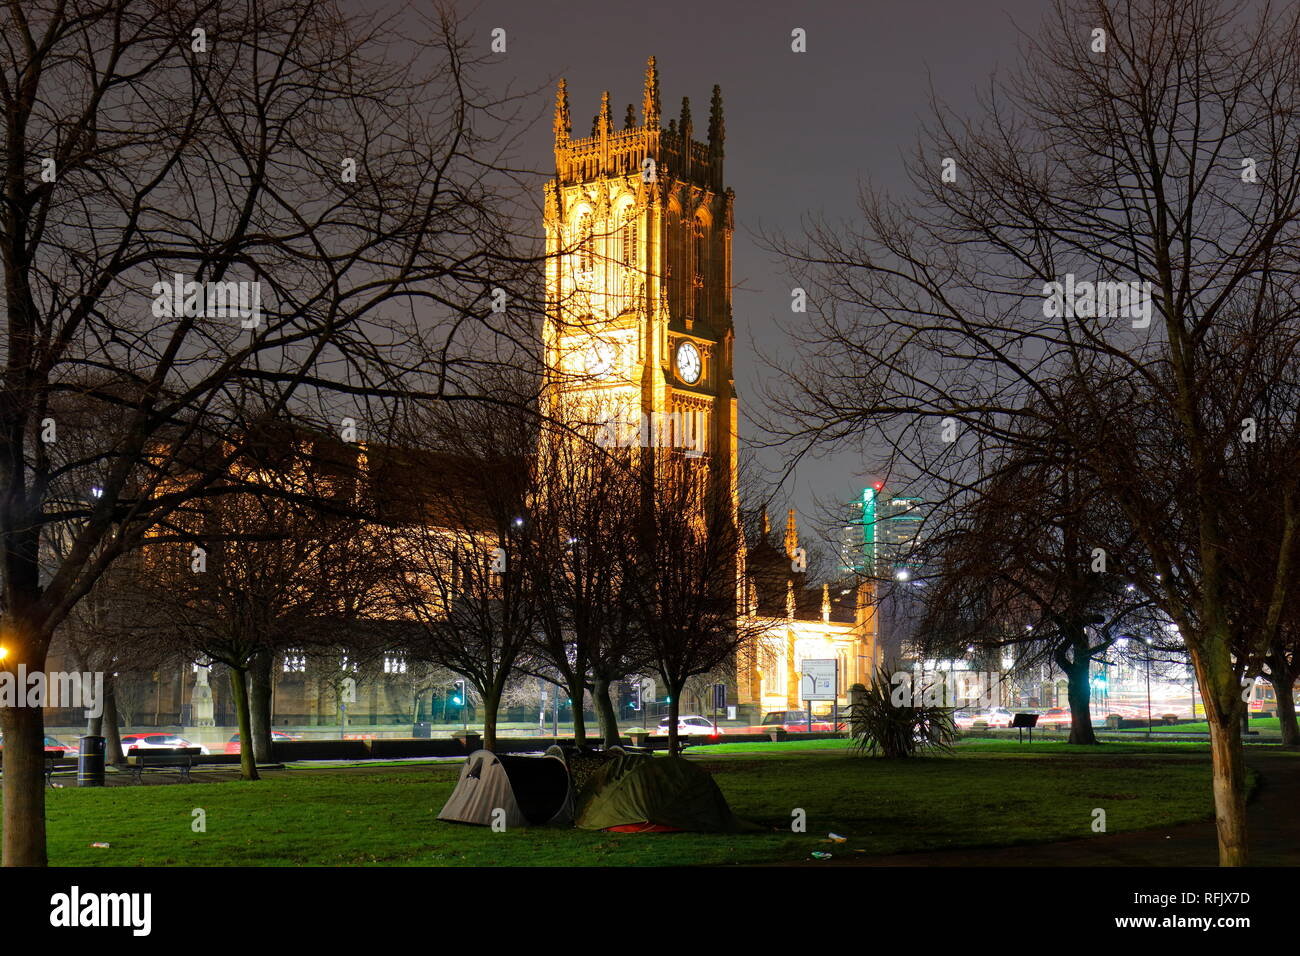 Leeds Minster at night. - Stock Image